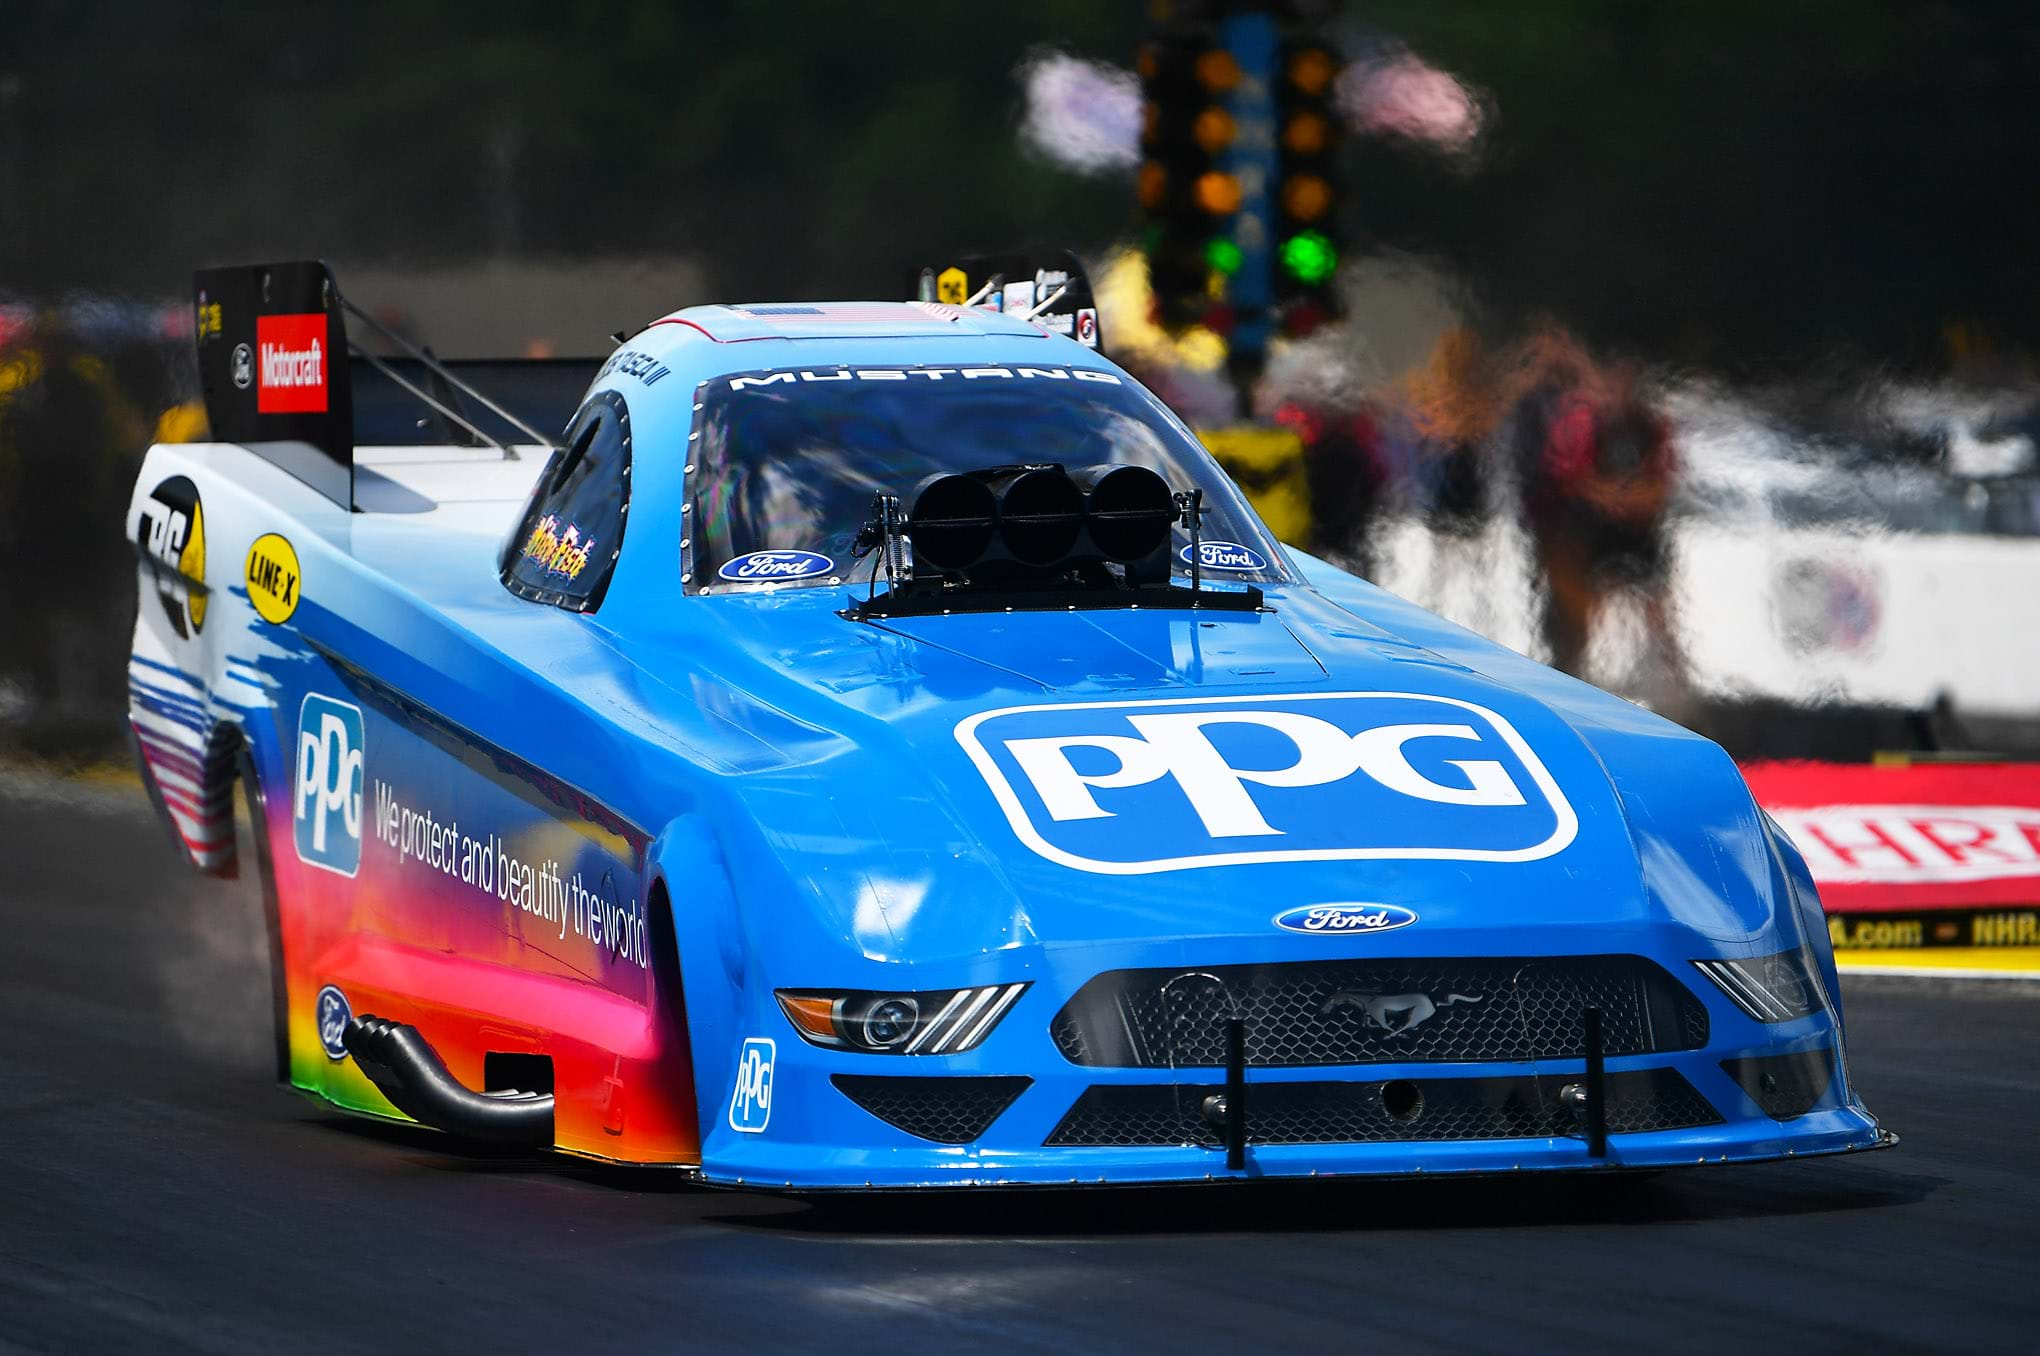 Tasca Racing PPG Primary Sponsor